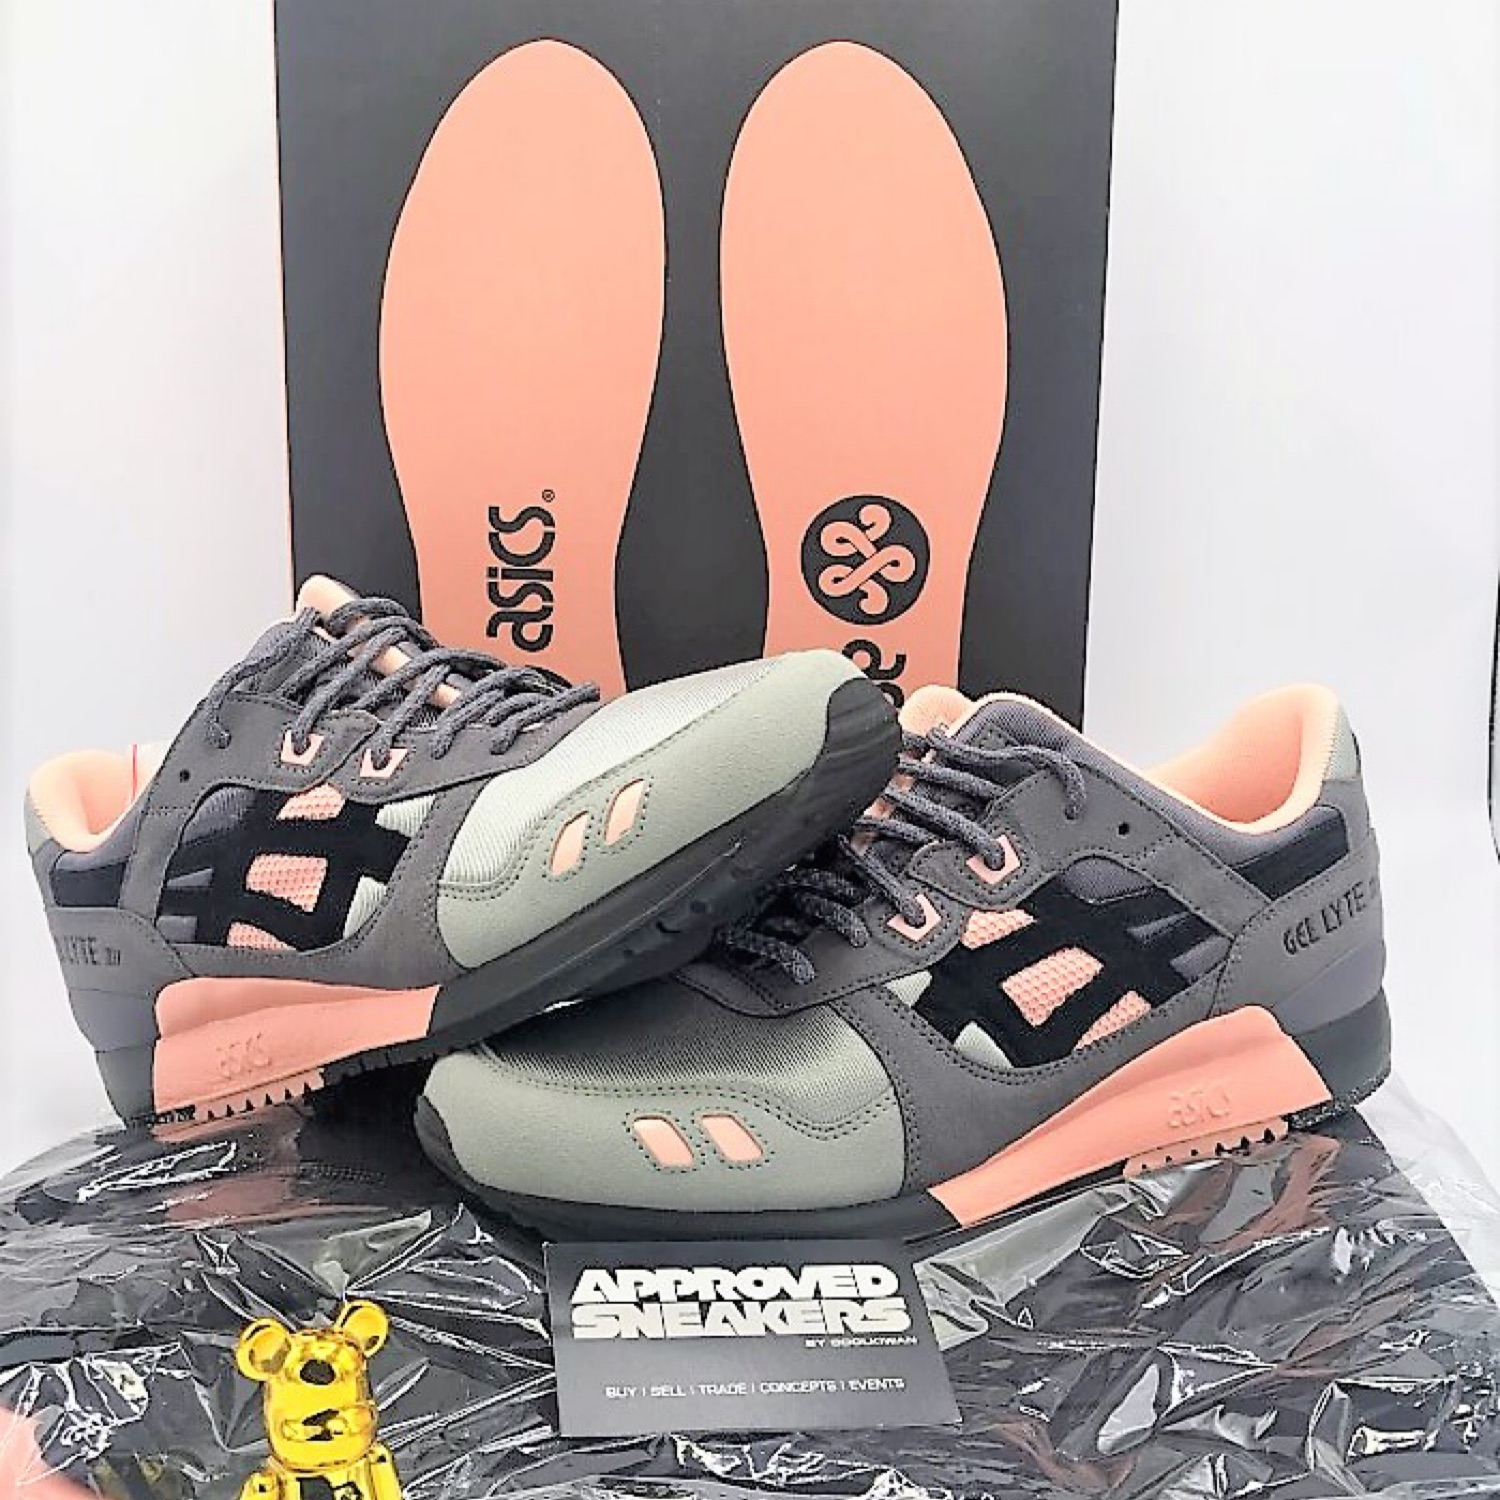 quality design f0bbd 42299 Woei X Asics Gel-Lyte Iii Vintage Nylon Pack